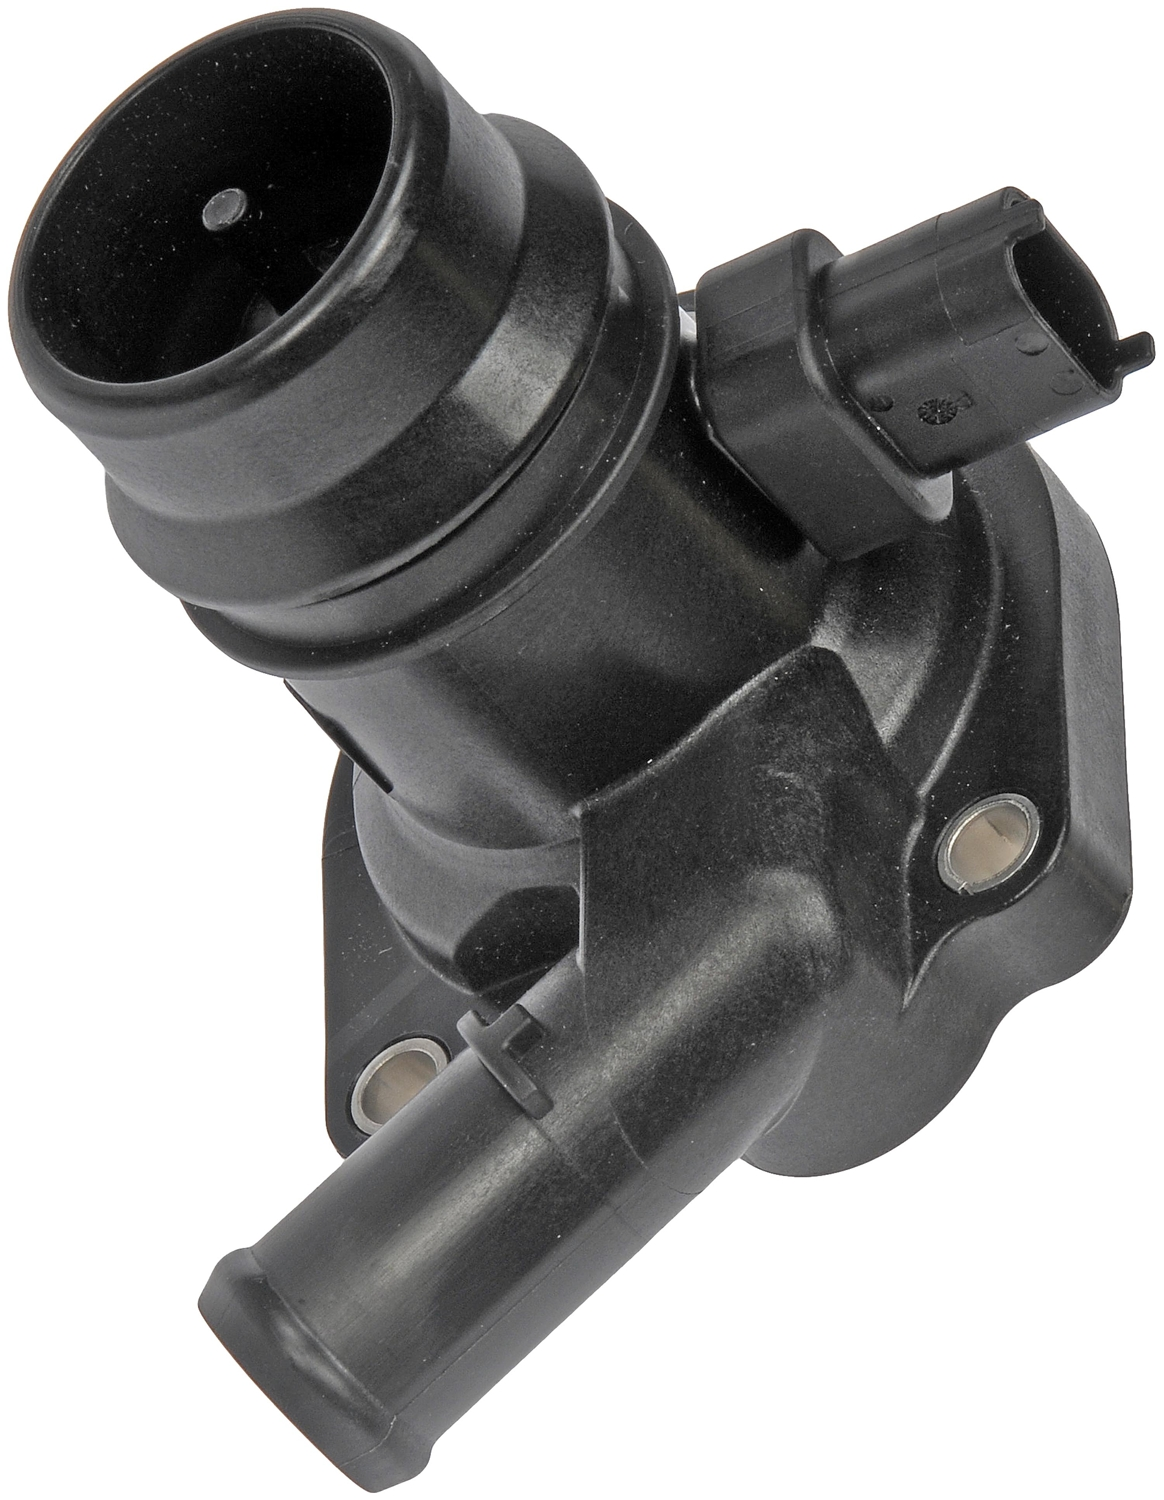 Dorman# 902-5131 Engine Coolant Thermostat Housing